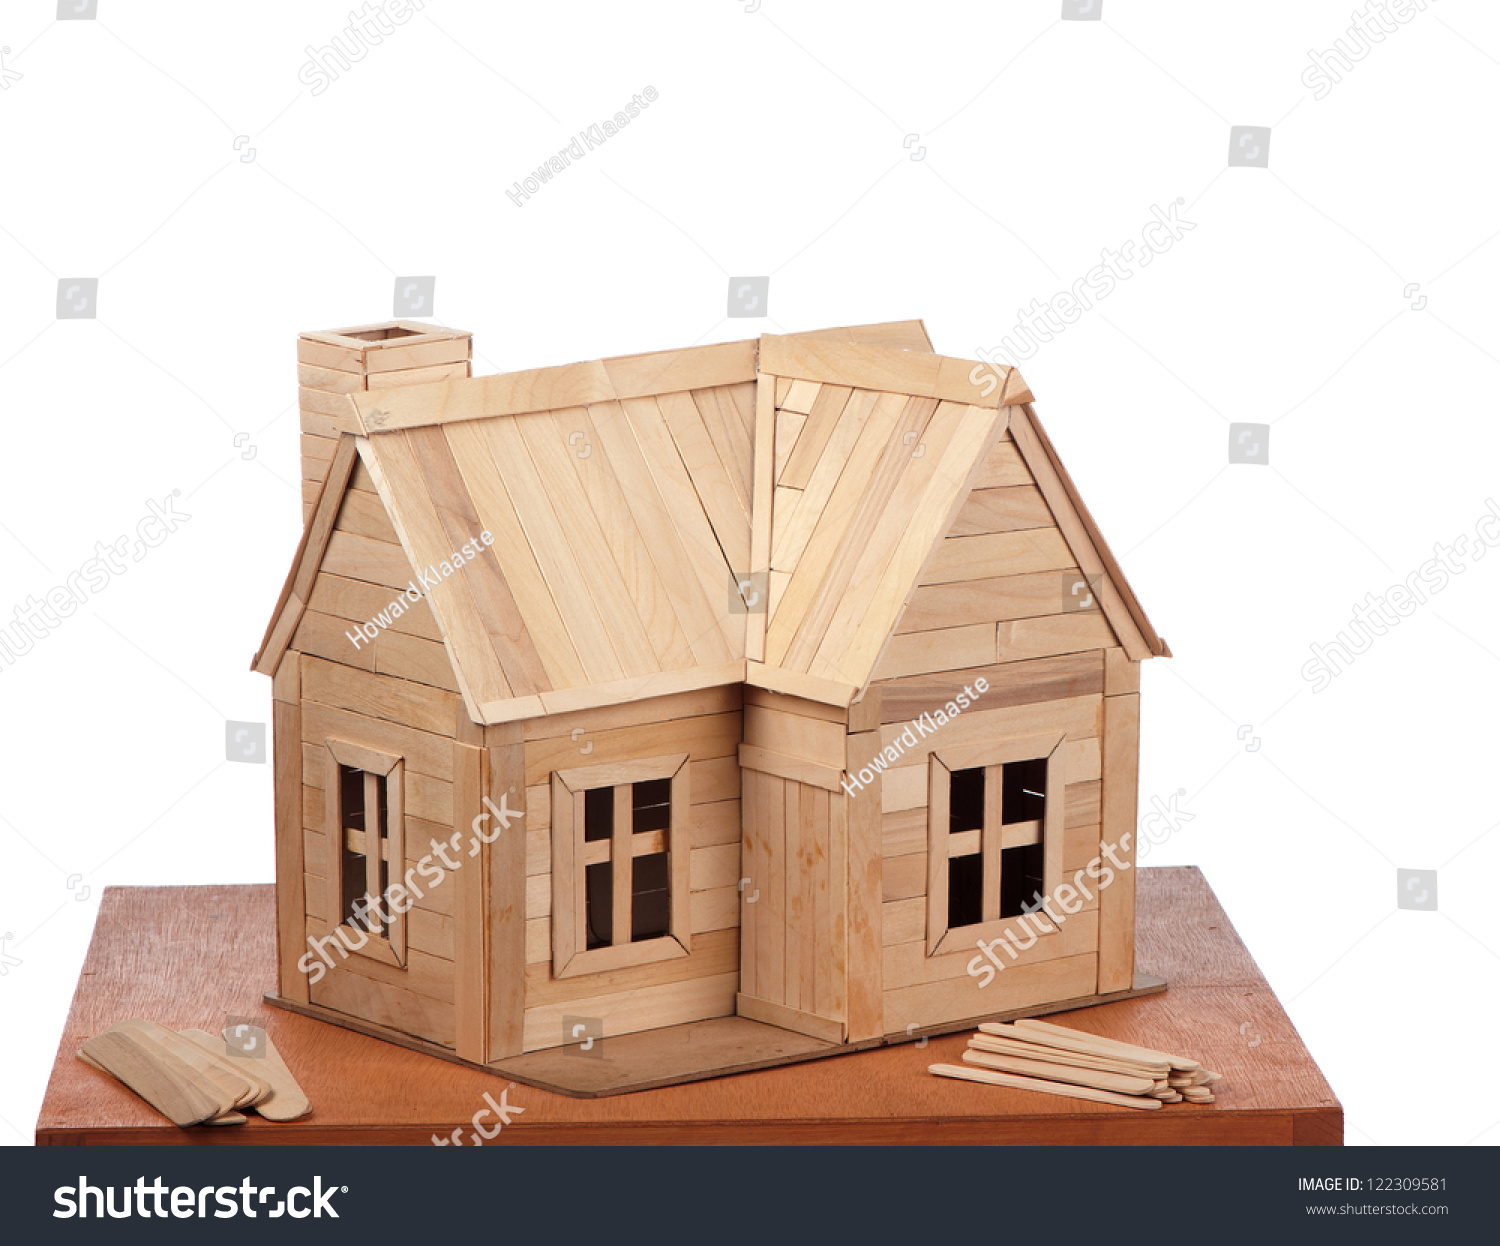 Completed popsicle stick house displayed some stock photo for Model house building materials